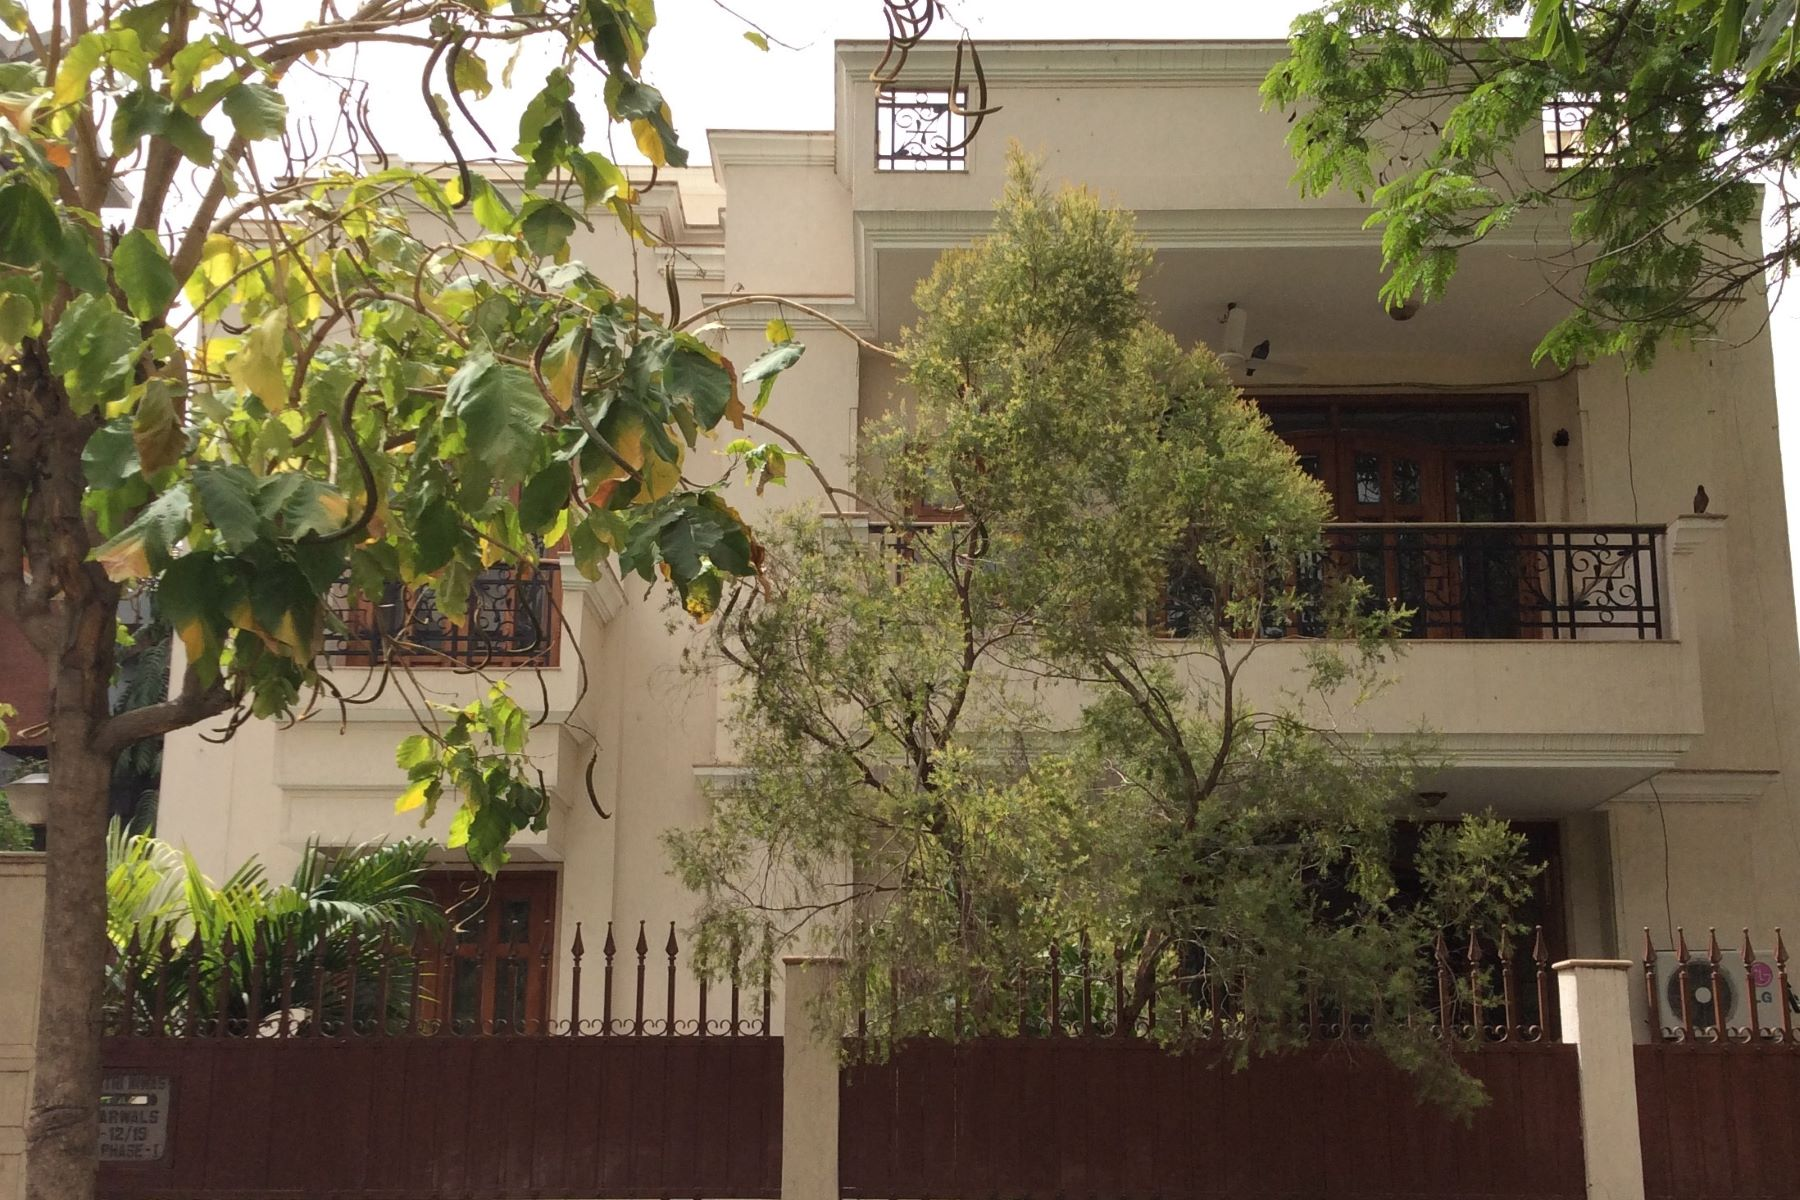 Multi-Family Home for Rent at Gurugram - Spacious Bungalow DLF Phase - 1, Other Haryana, Haryana, 122001 India